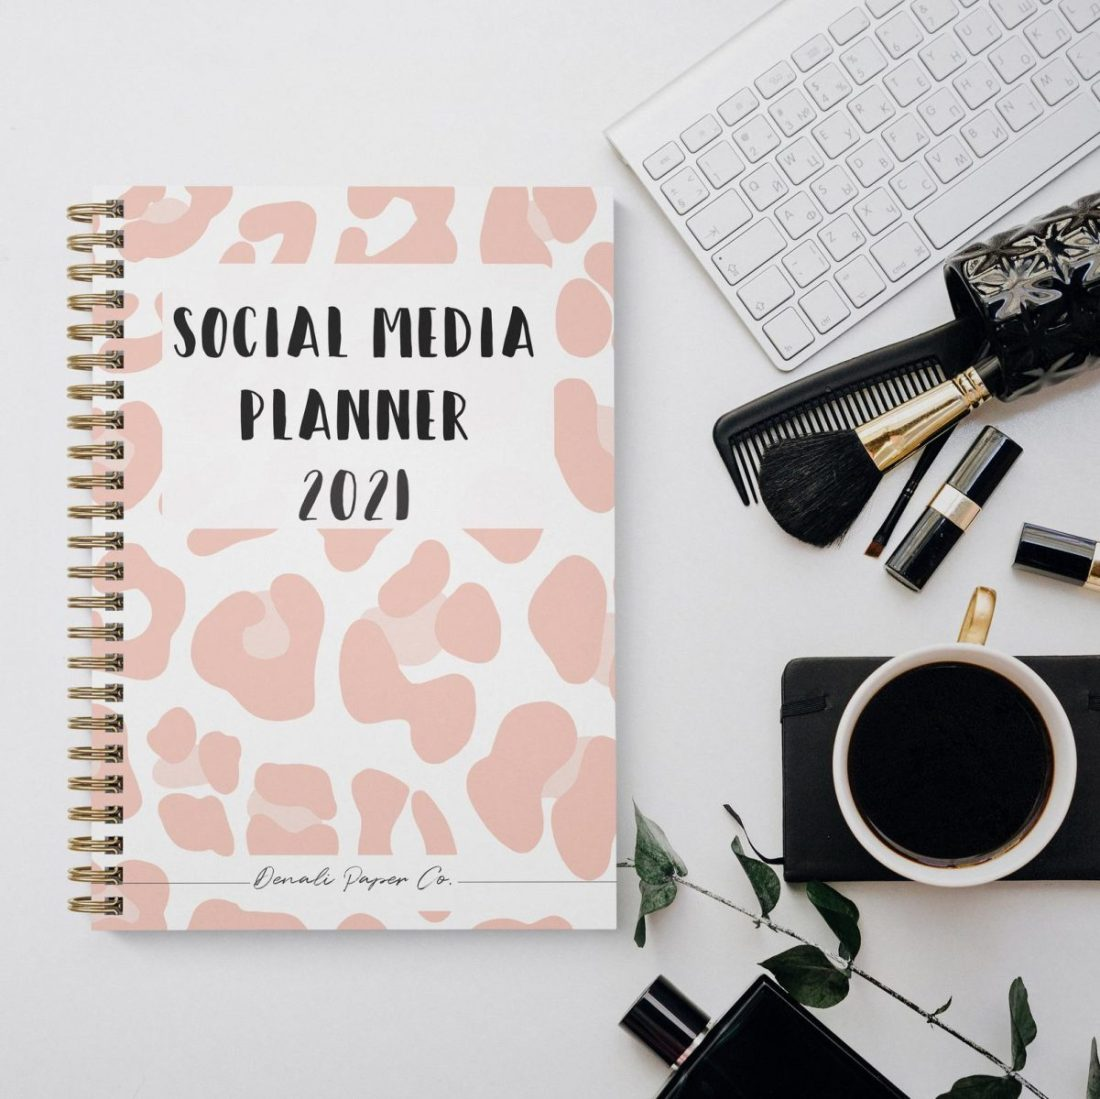 Physical Instagram and Social Media Planners